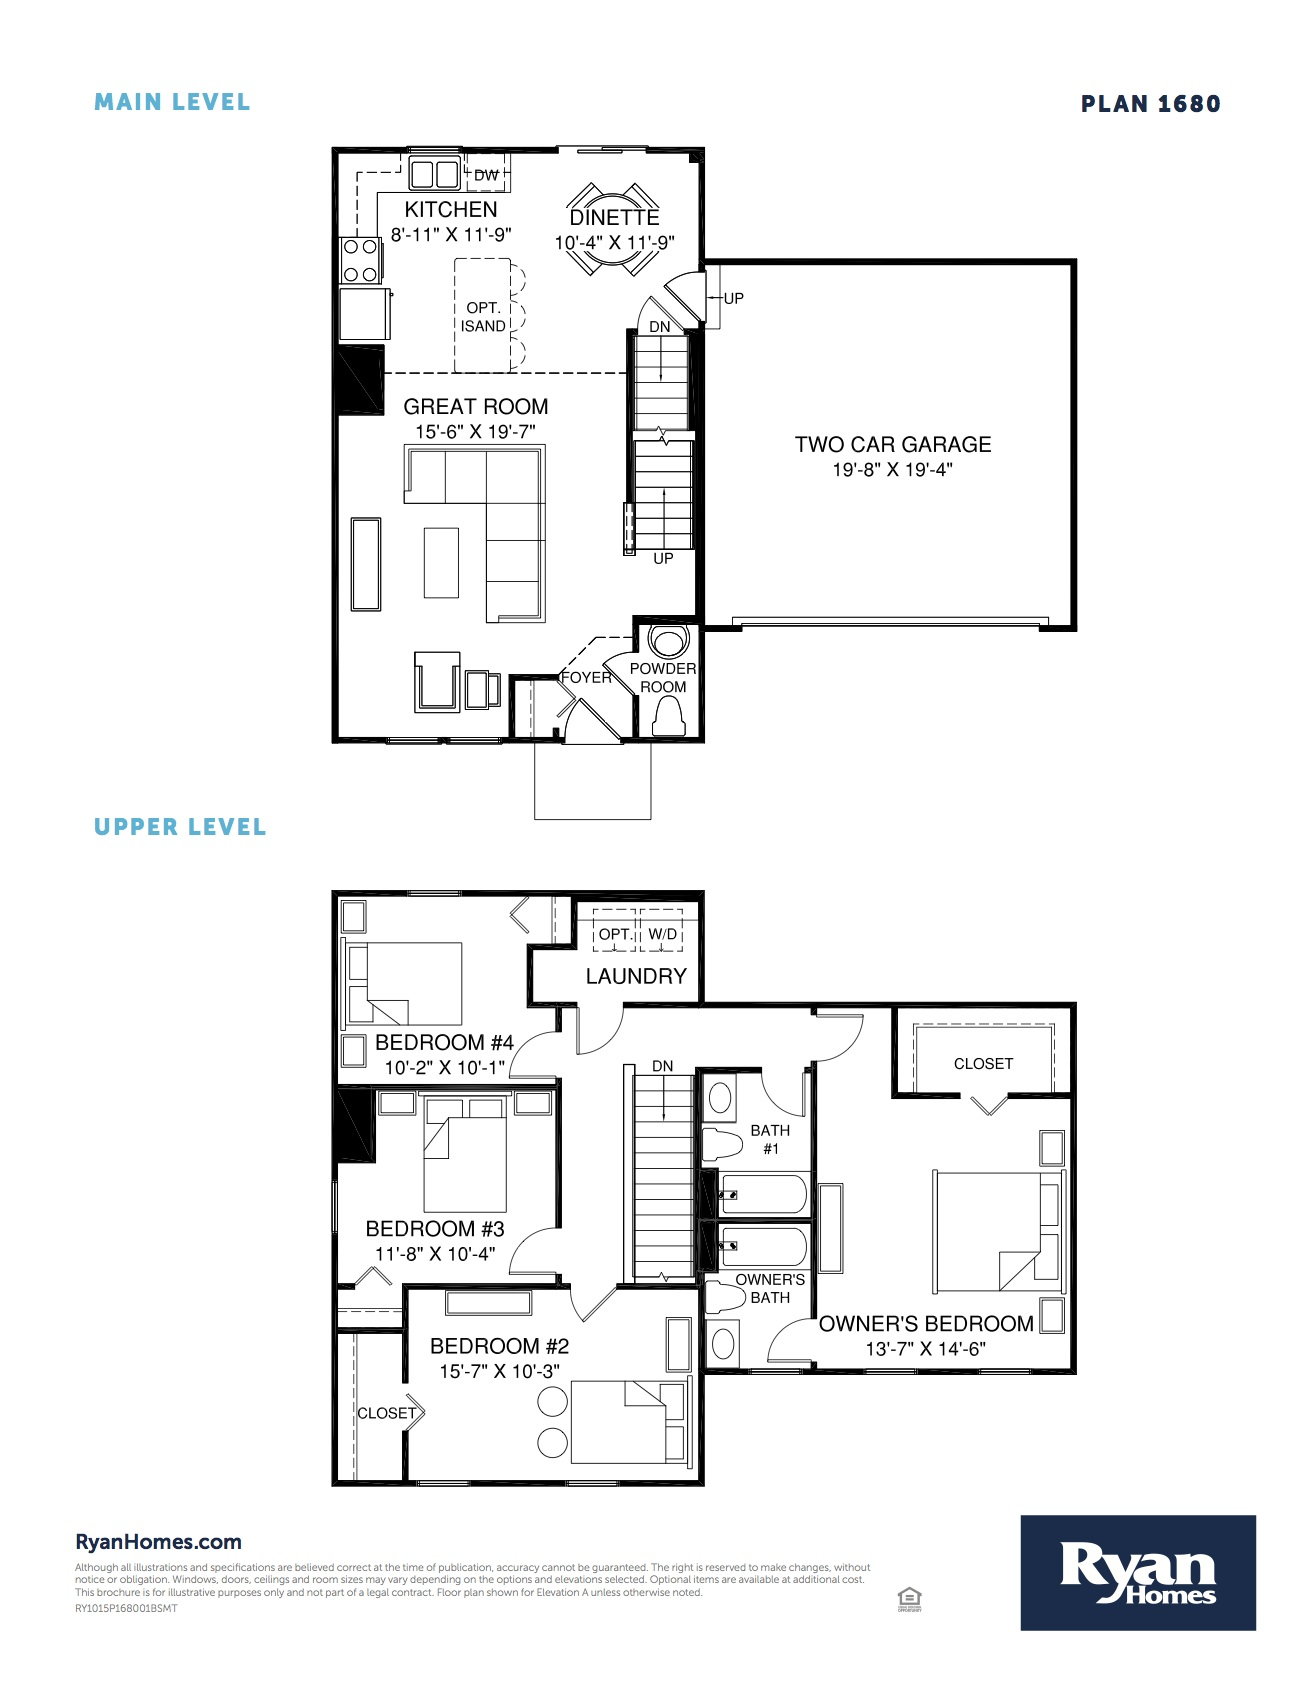 Older ryan homes floor plans for Ran homes plans